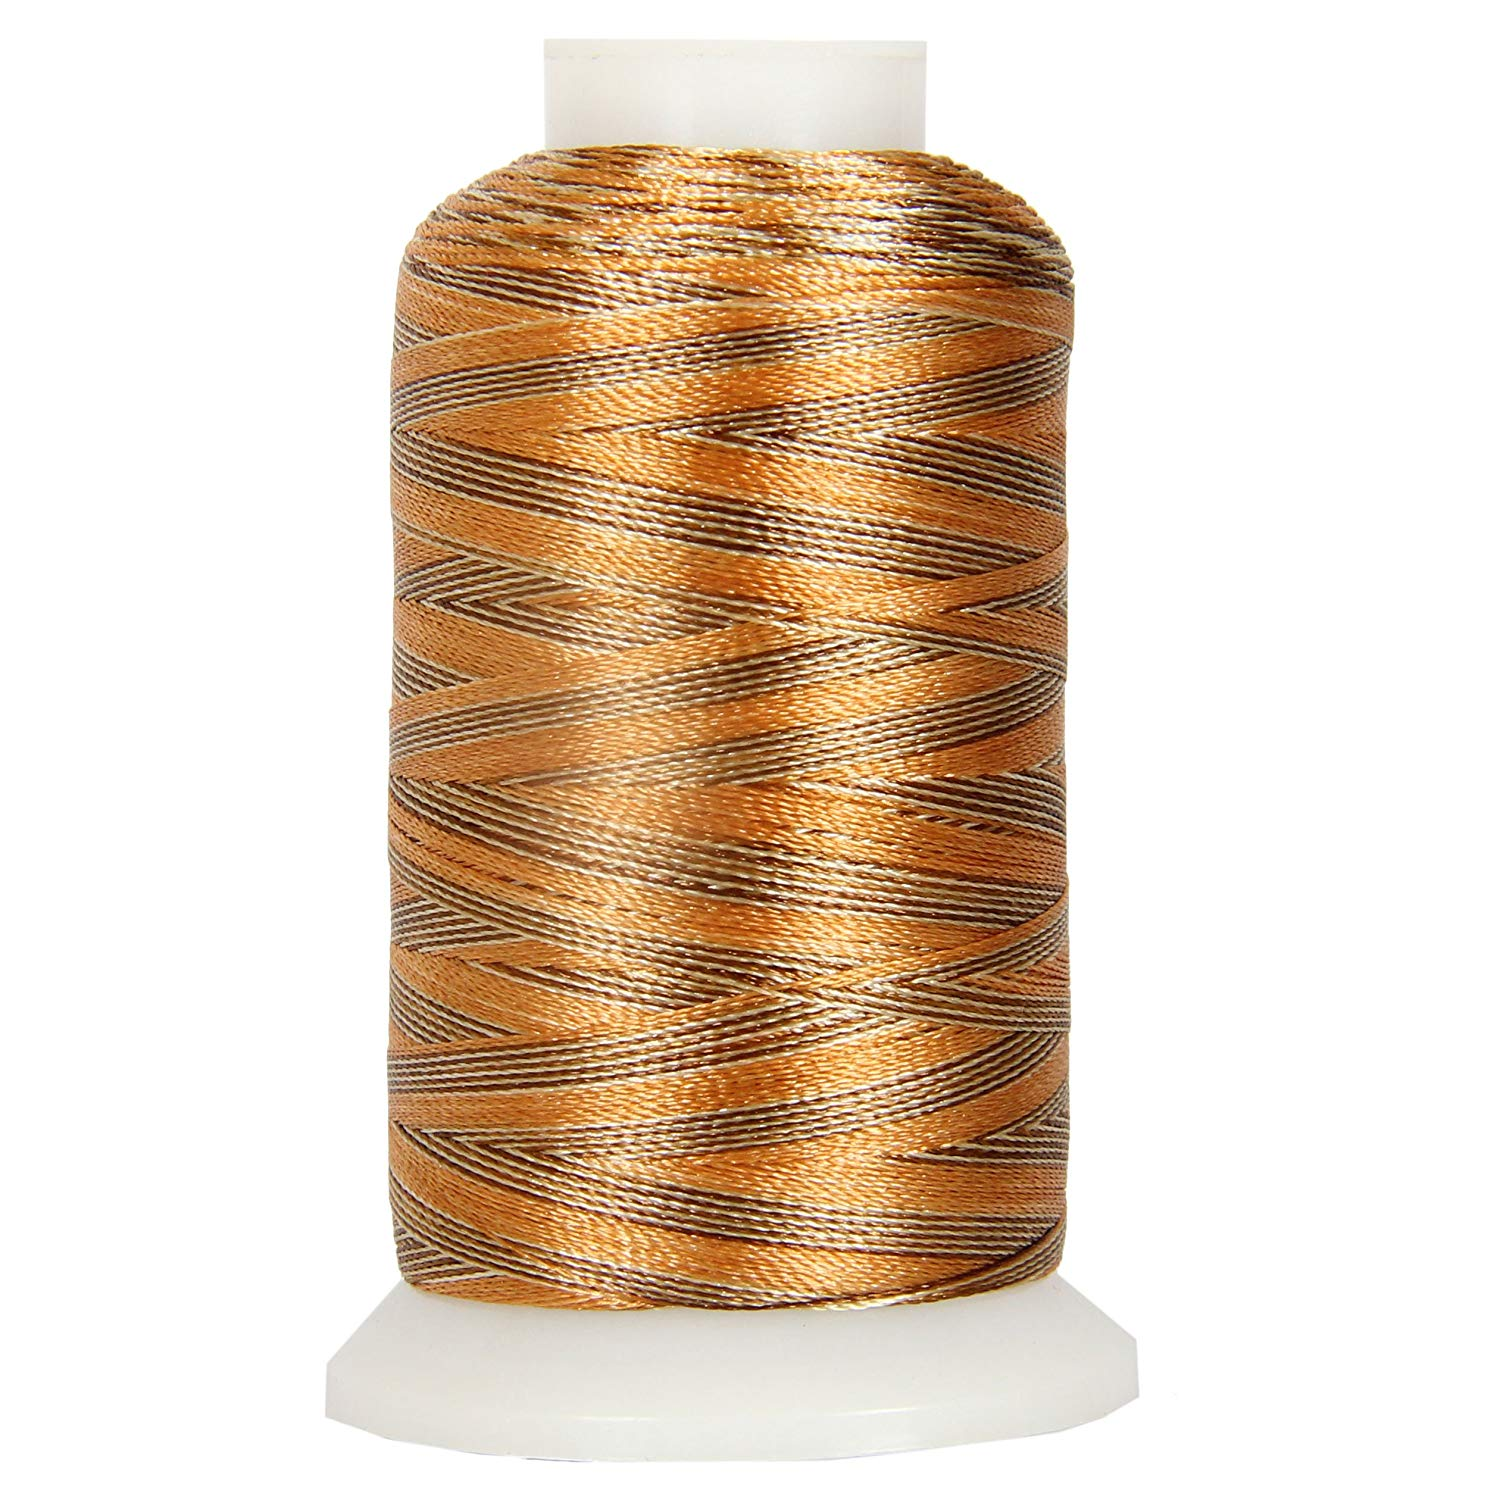 Threadart Variegated Polyester Embroidery Thread - 40wt - 1000m - 25 Colors Available - No. 15 - Sunray - 4 spool bundle pack